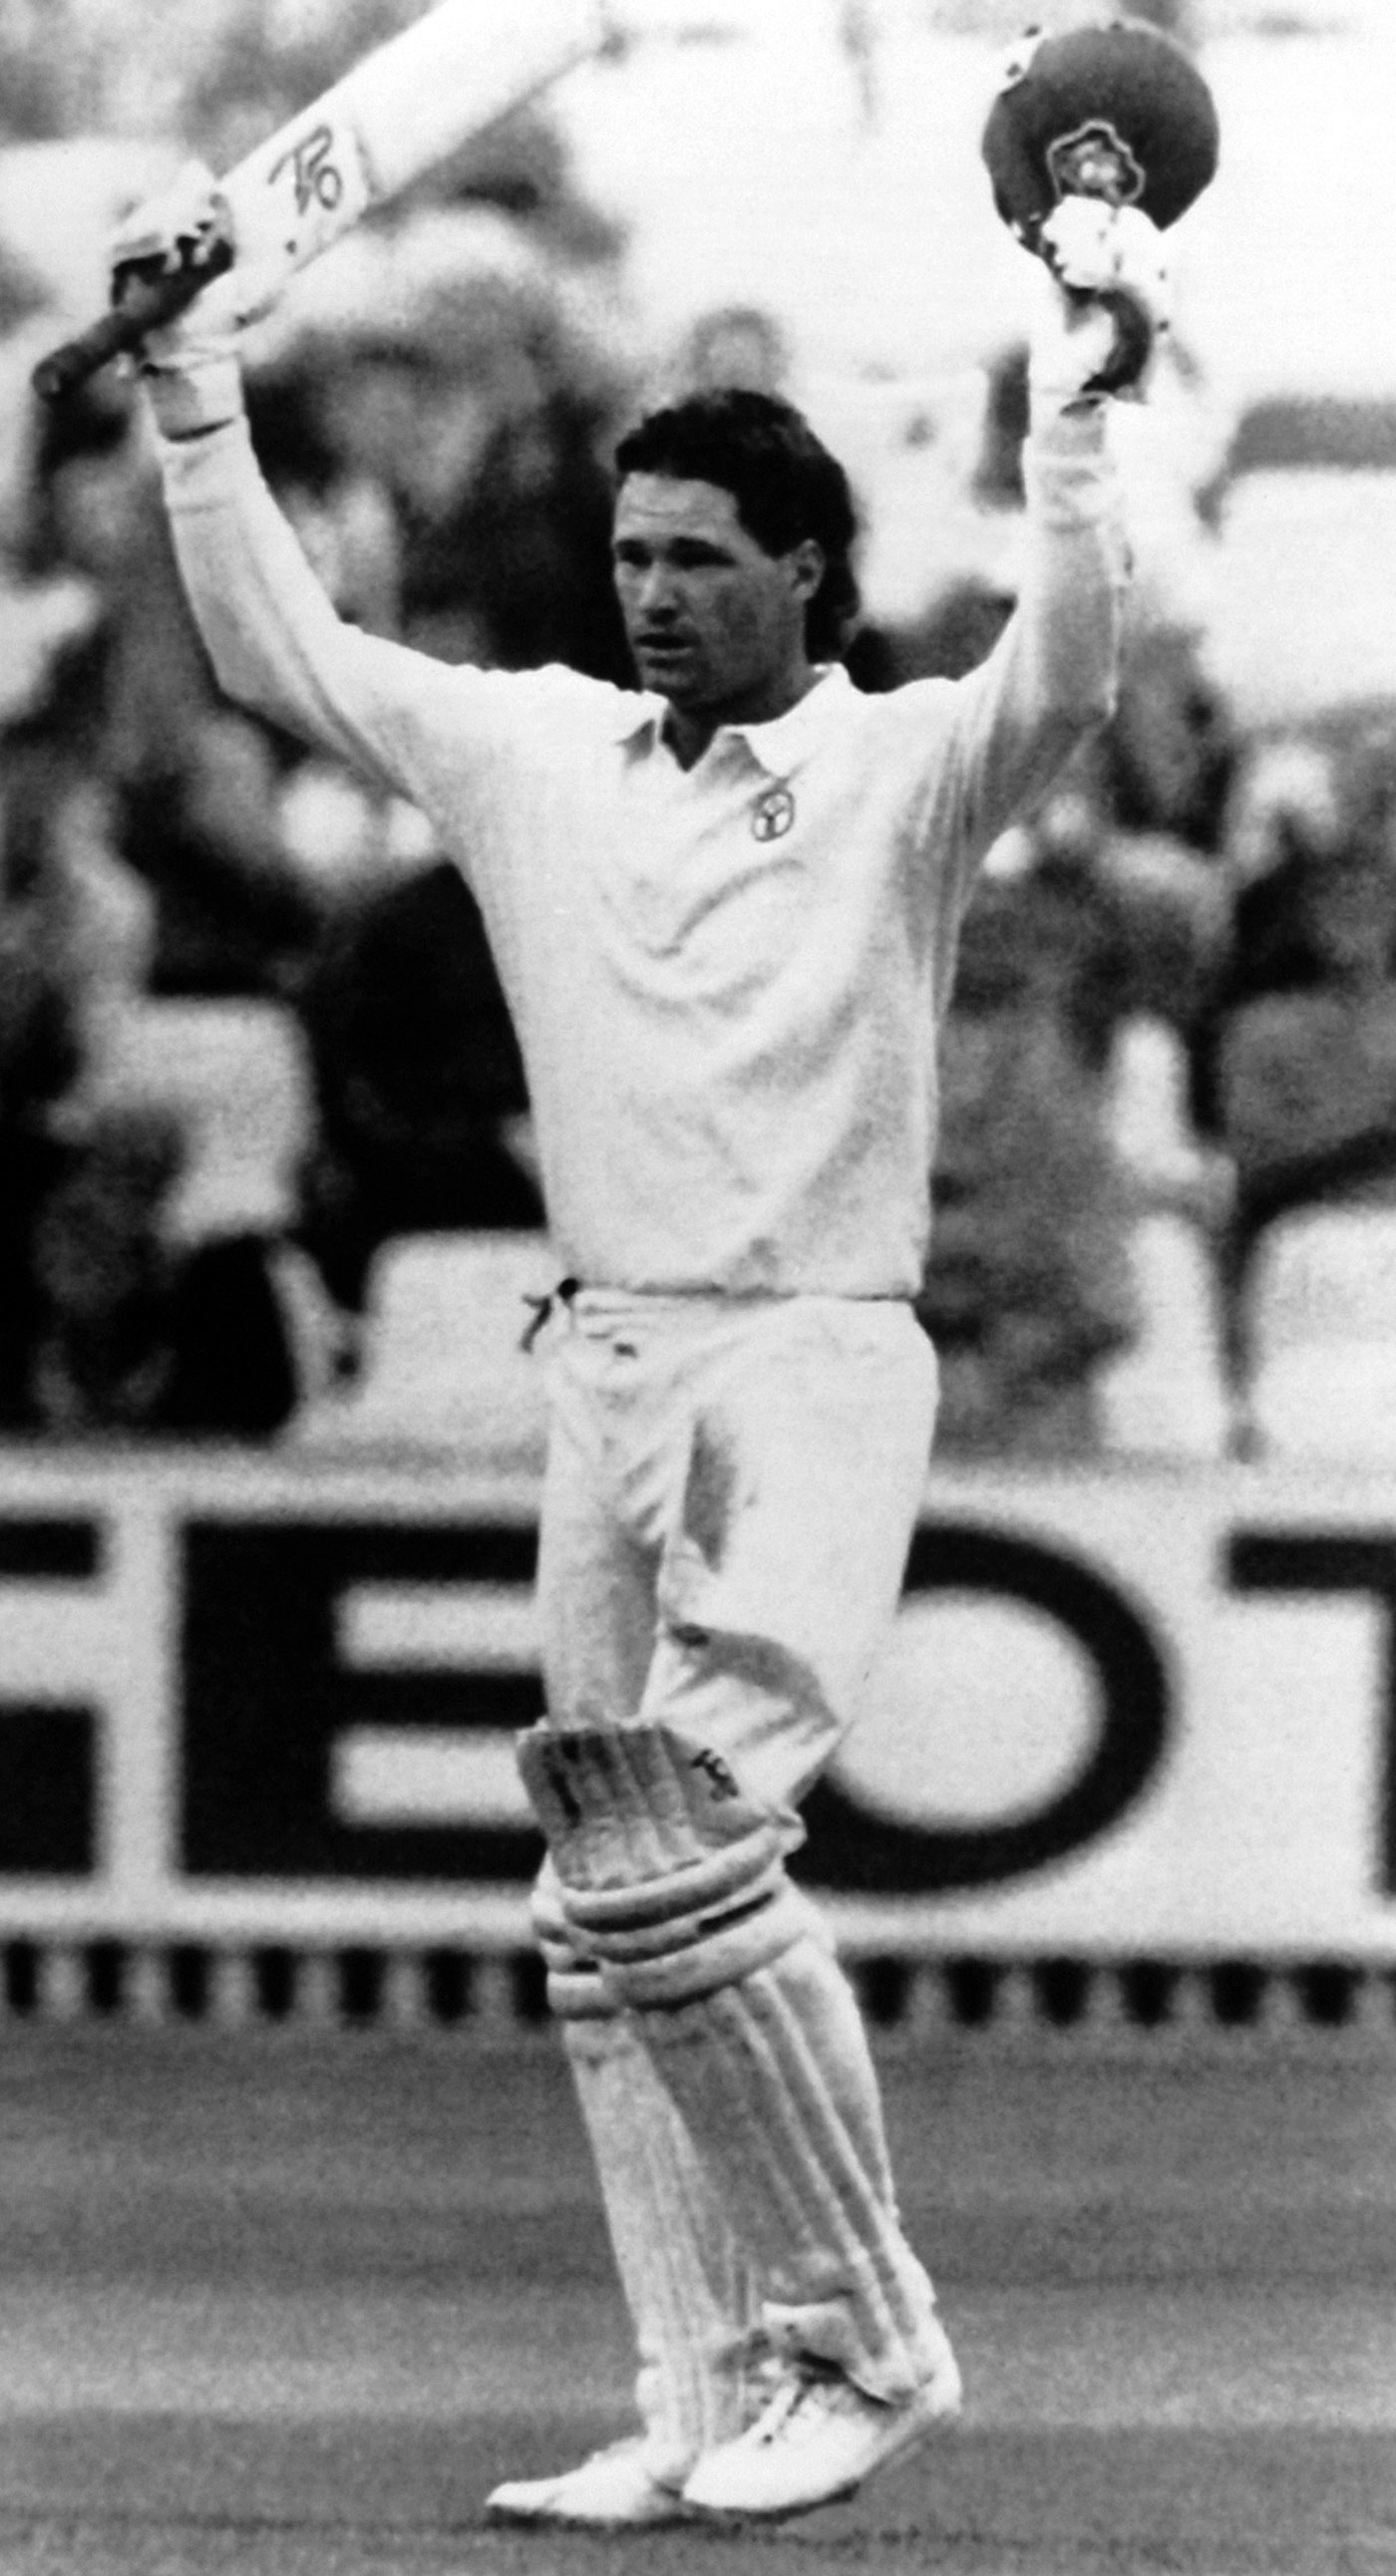 Dean Jones celebrates his century, England v Australia, 3rd Test, Edgbaston, 2nd day, July 7, 1989